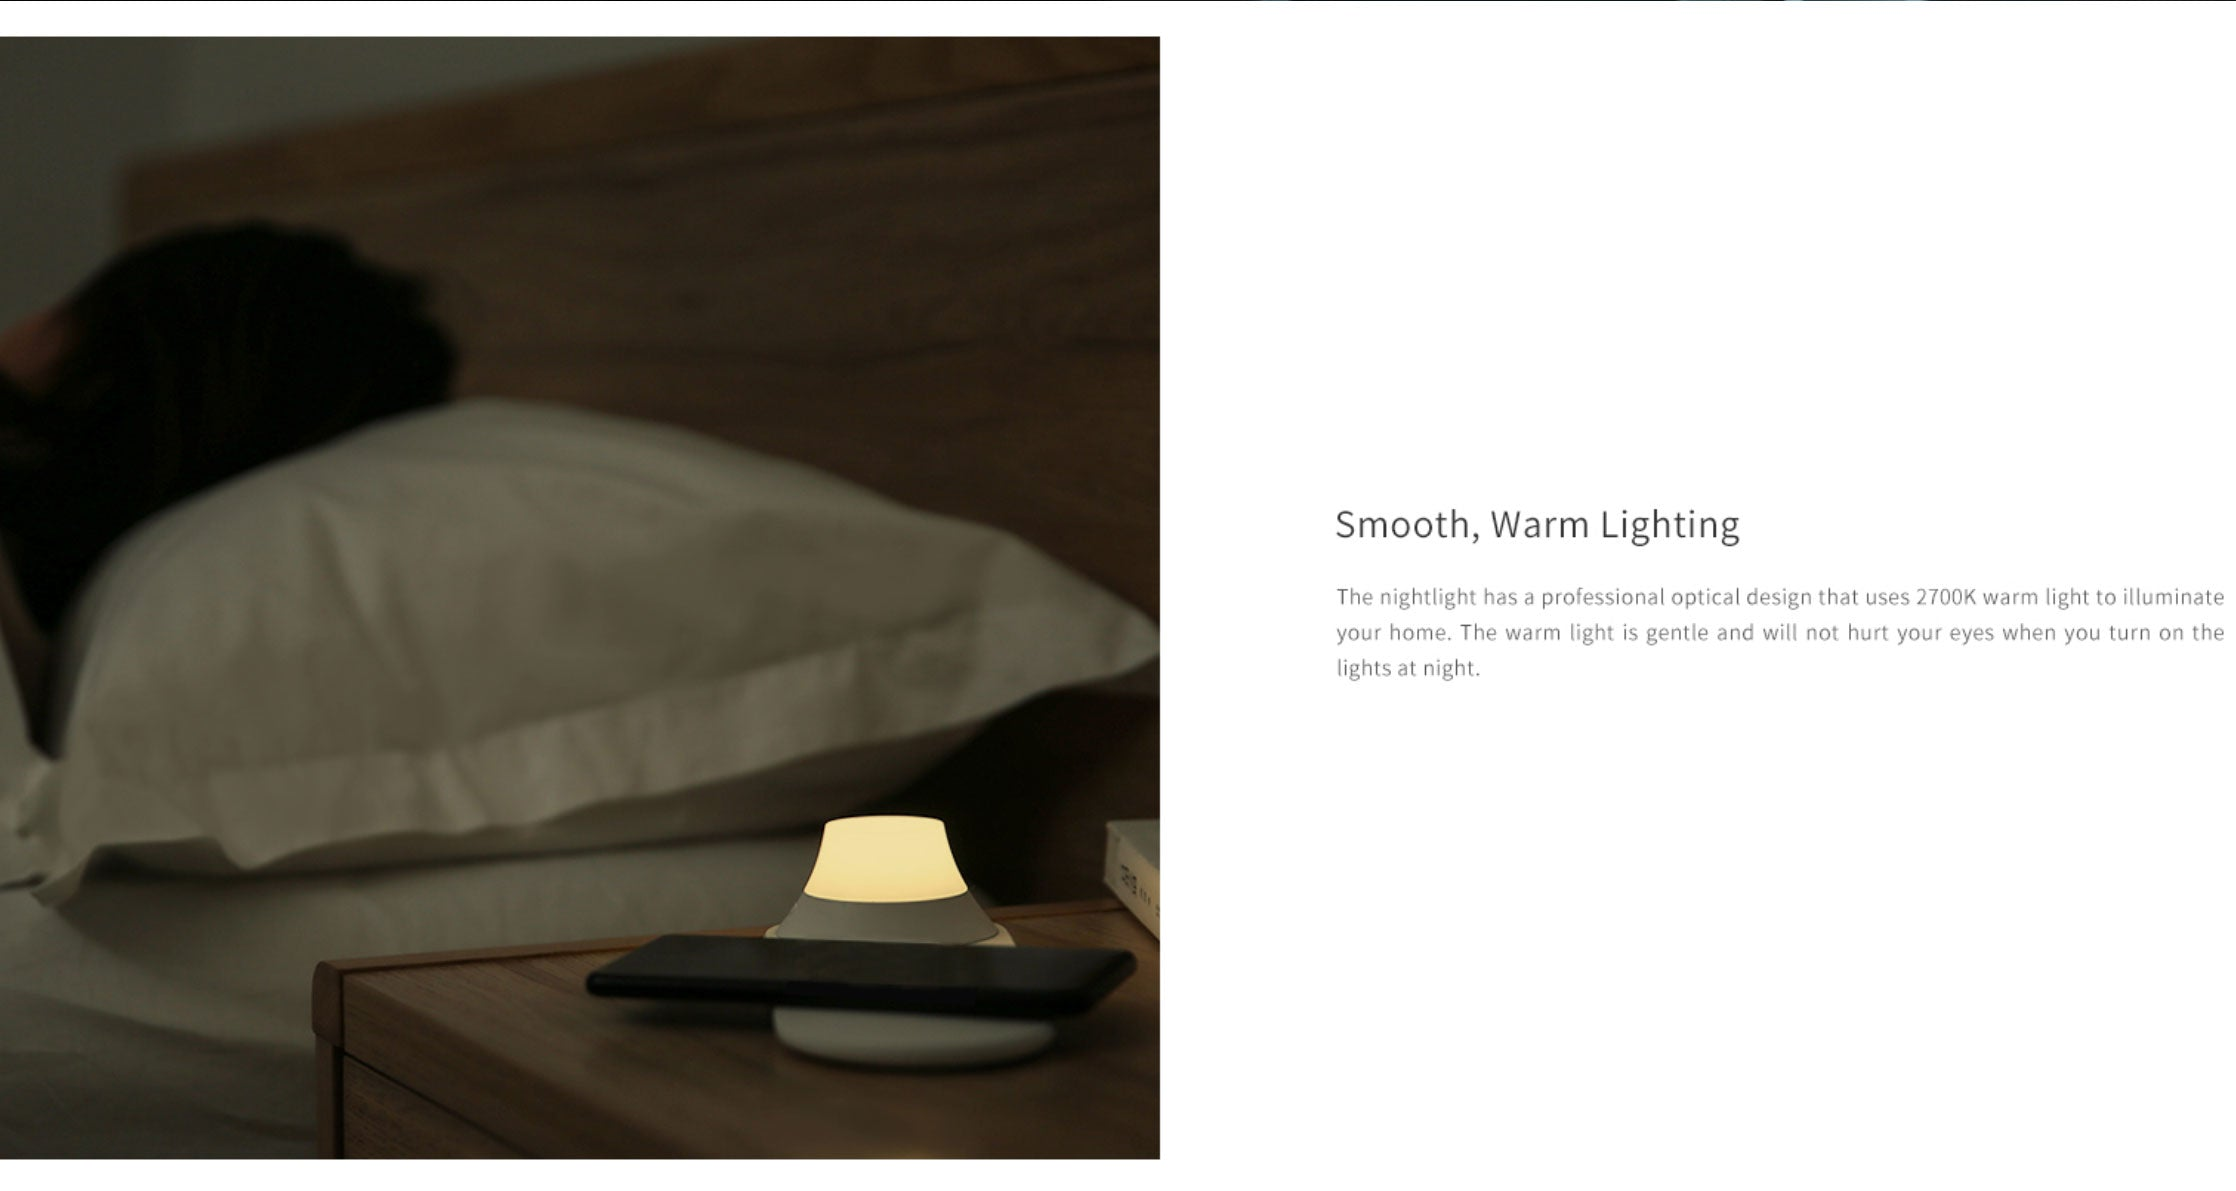 Yeelight 2-in-1 Bedside Night Lamp with Wireless Charger